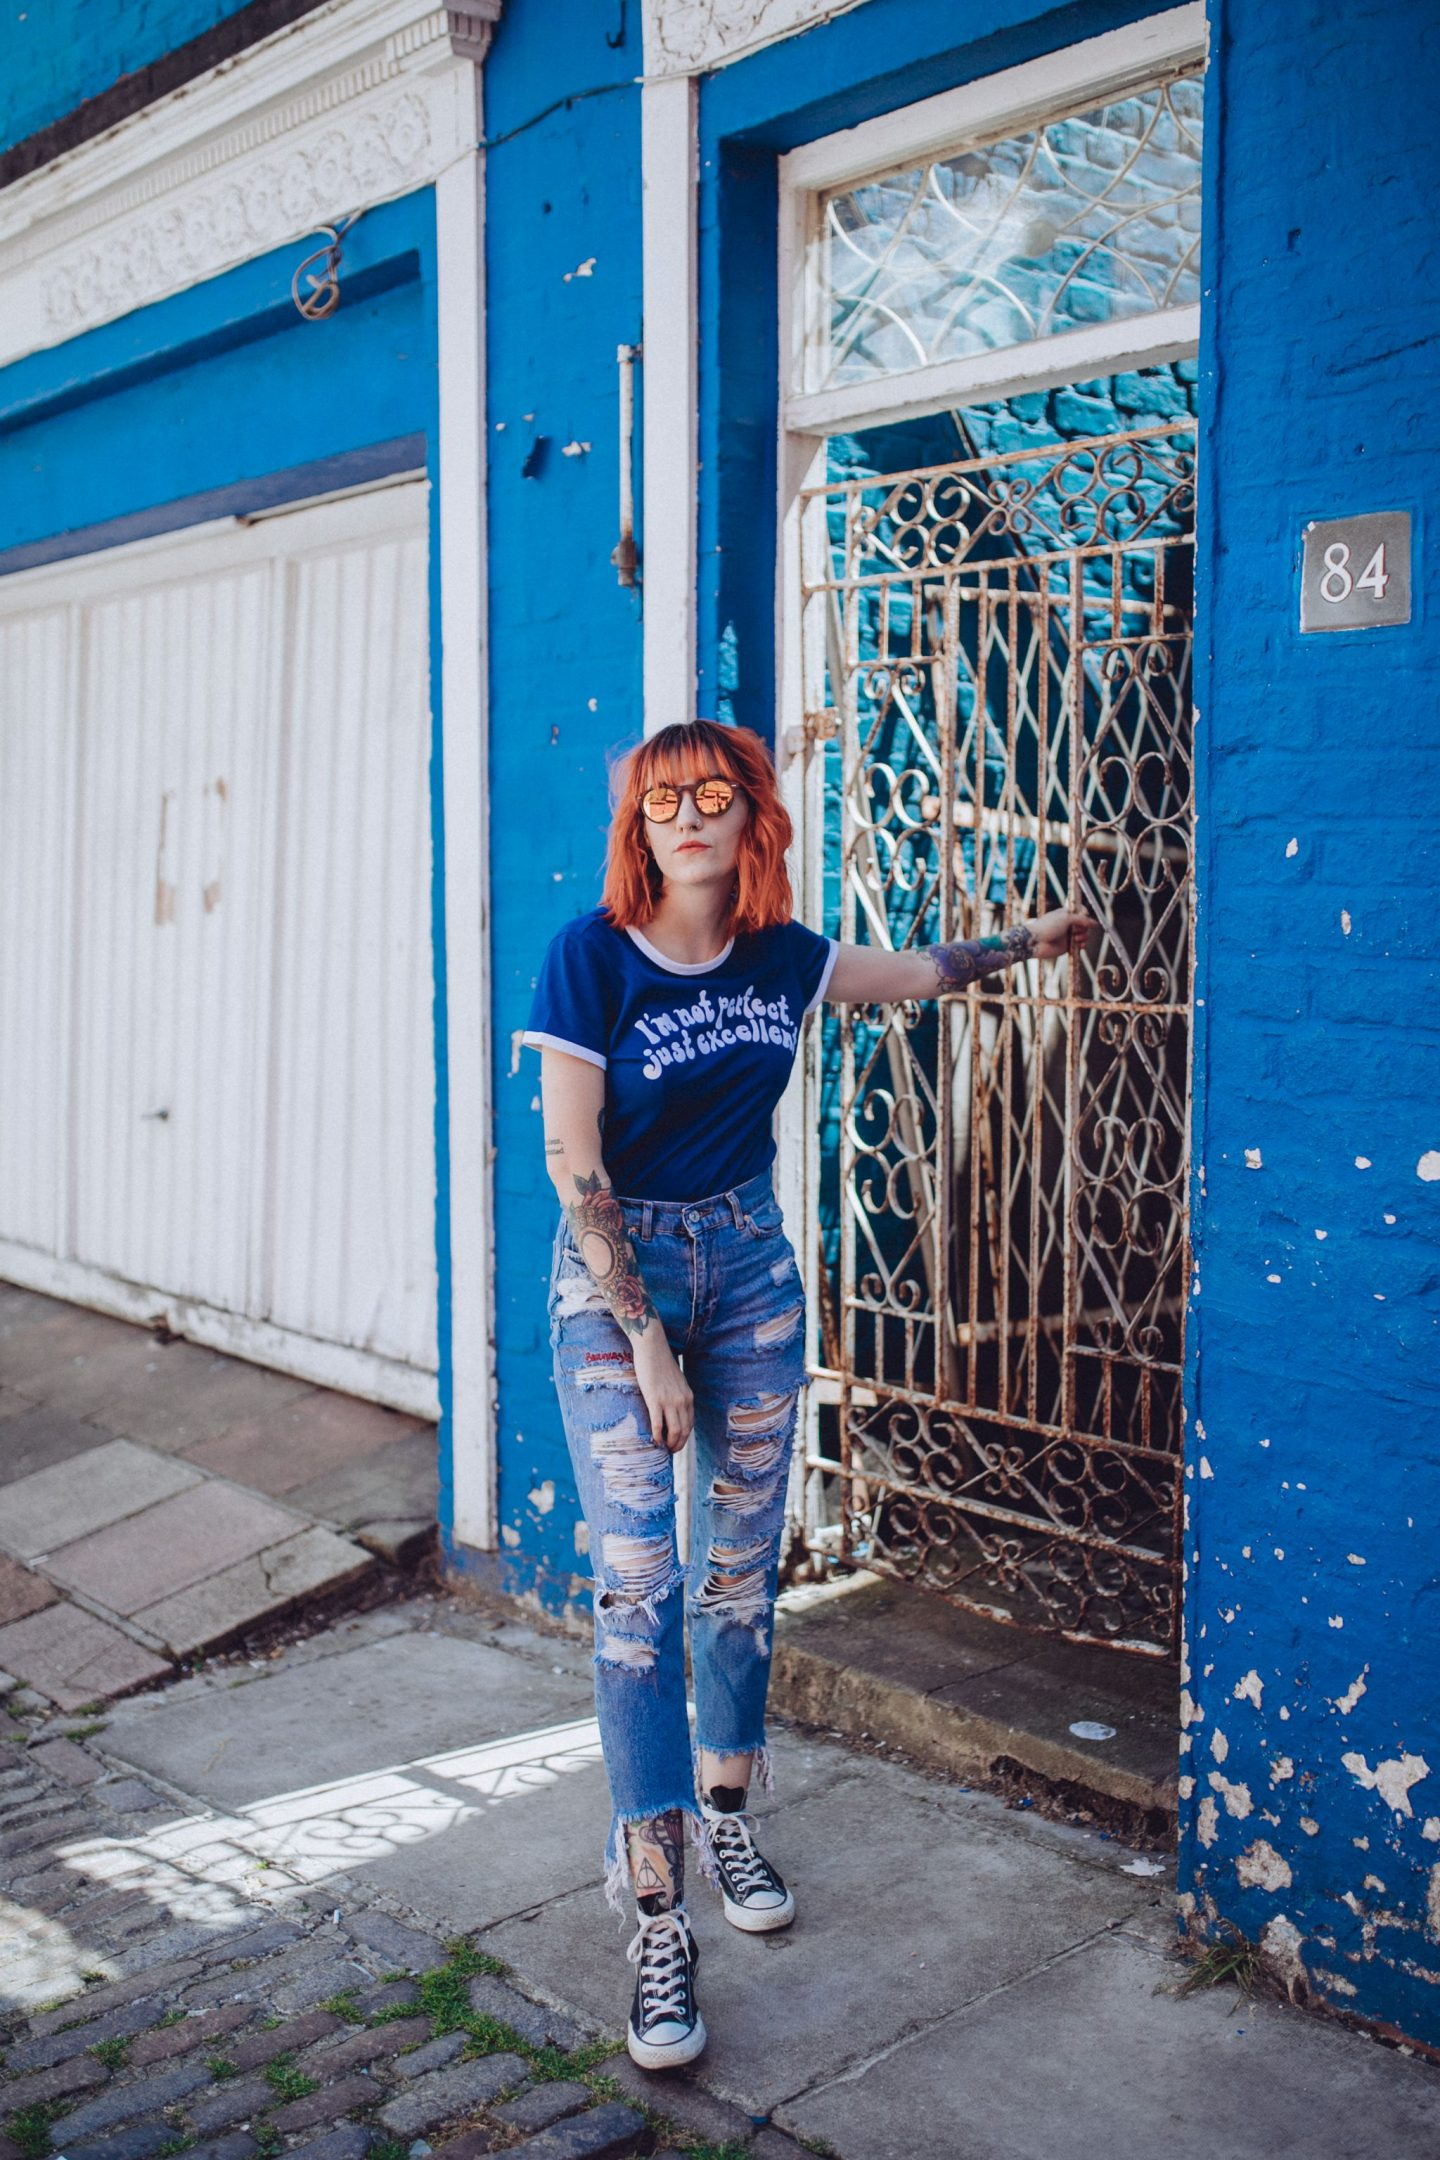 10 thoughts before turning 25 - full outfit; slogan tee, ripped jeans & converse